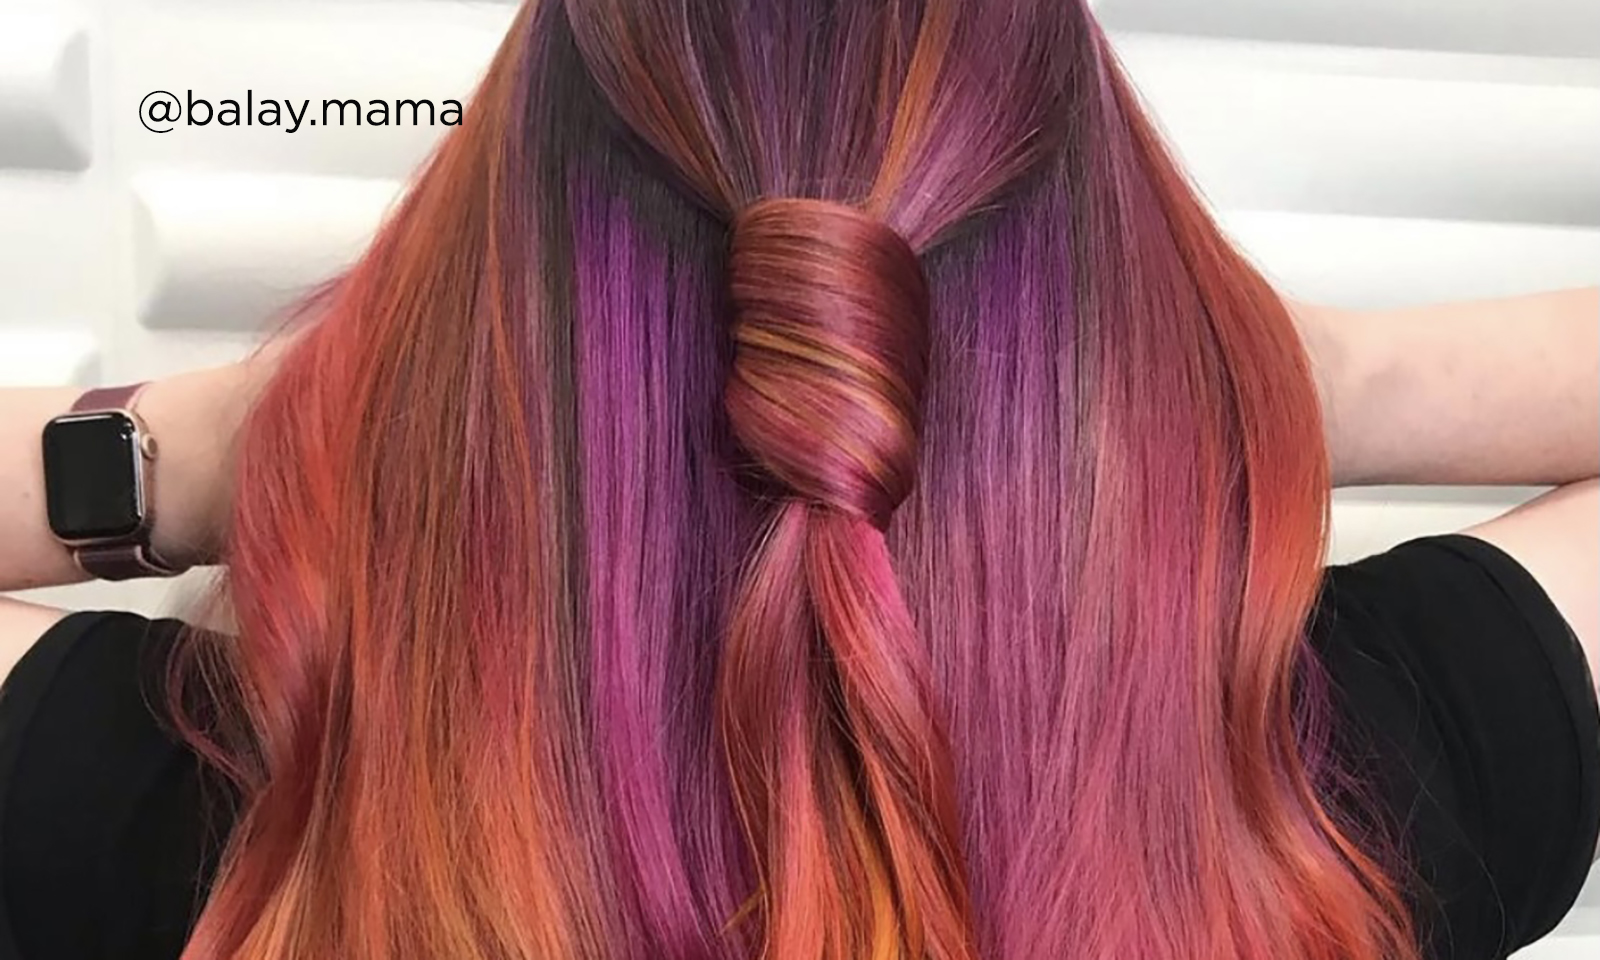 brightest-and-most-colorful-fall-hair-colors-main-image copy